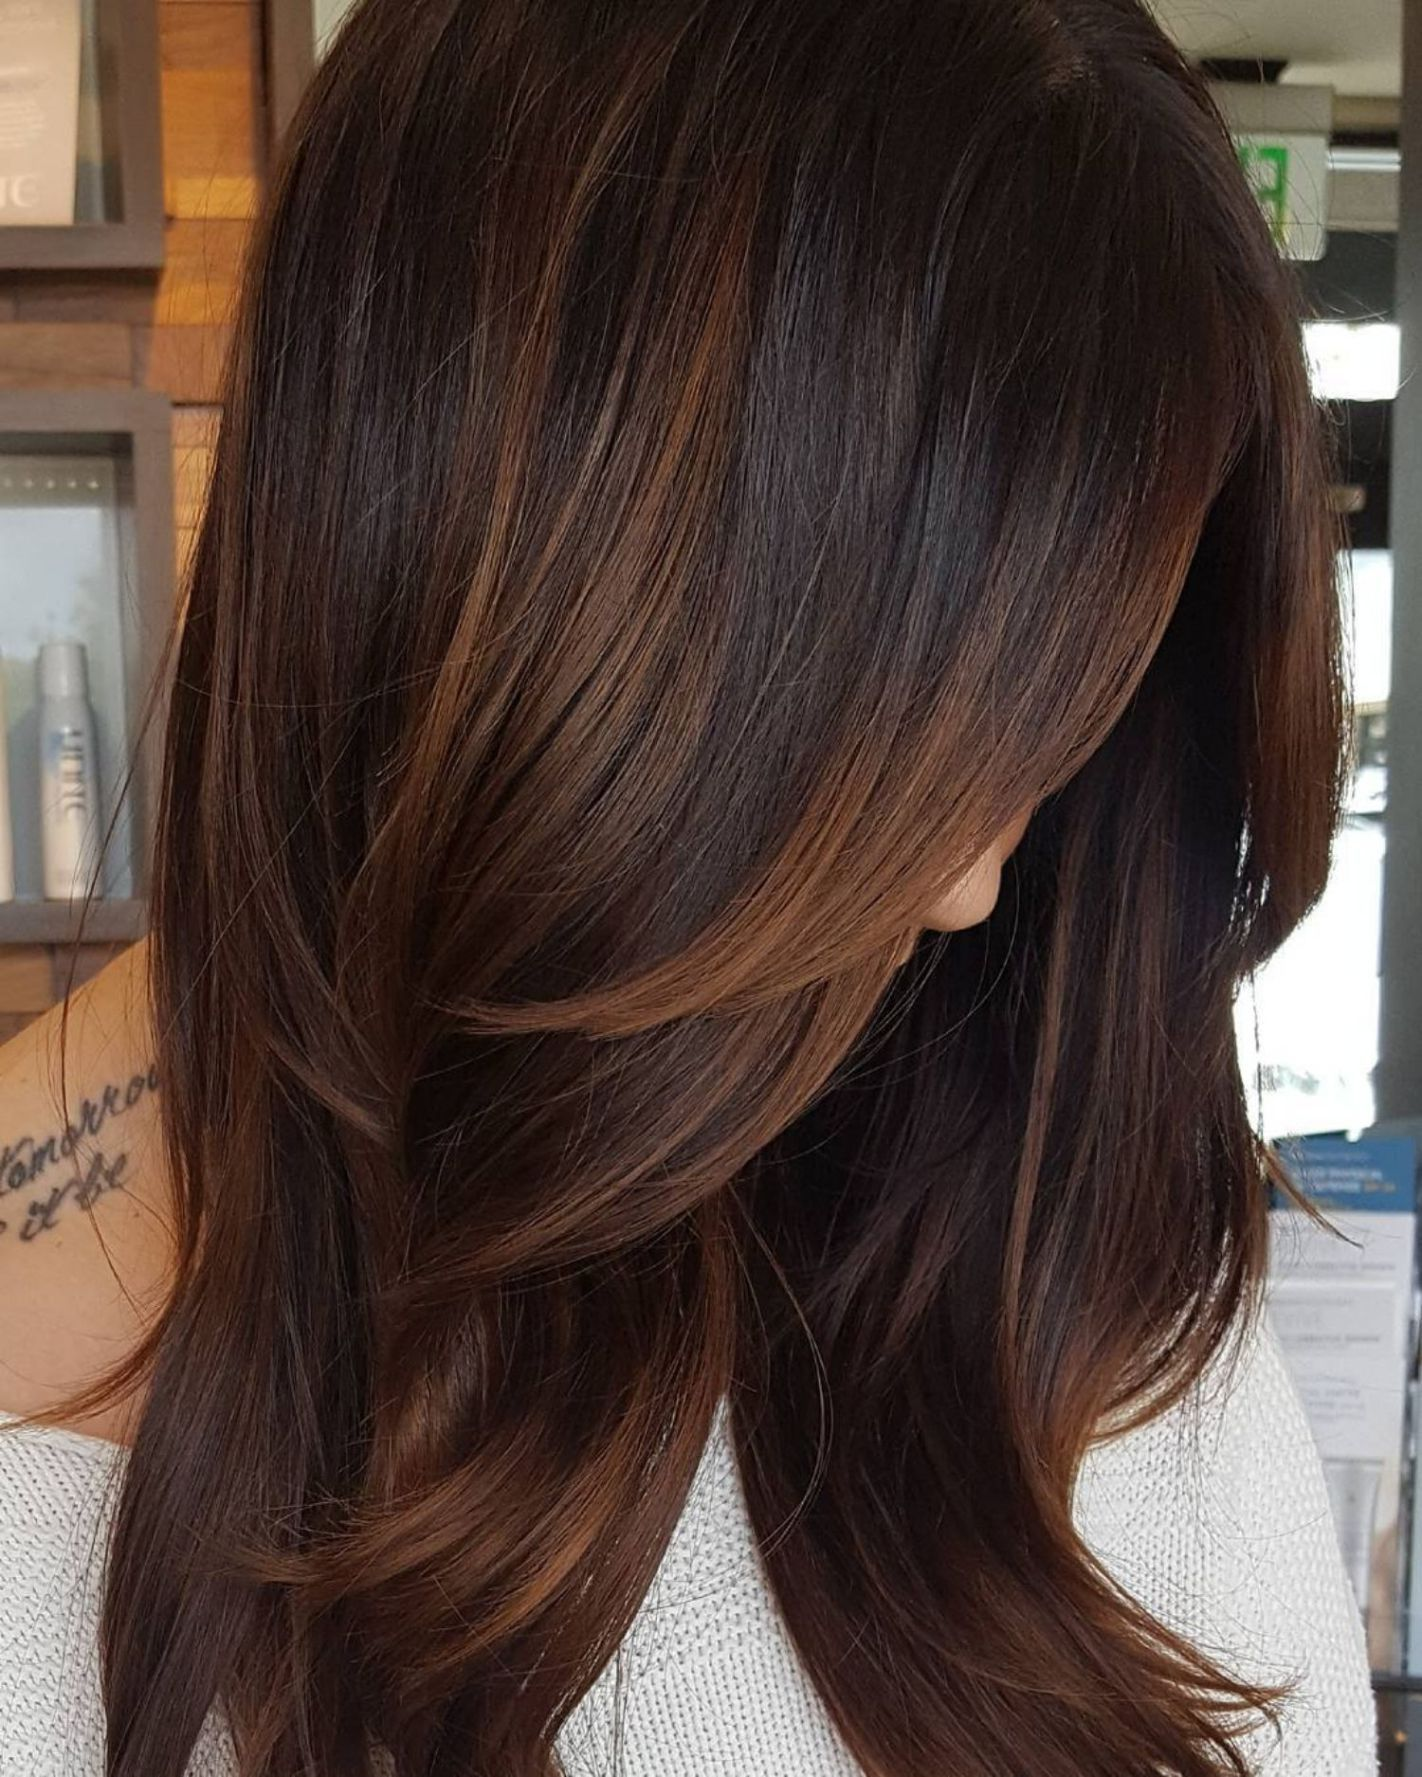 60 Hairstyles Featuring Dark Brown Hair With Highlights Hair Styles Dark Hair With Highlights Brown Hair With Highlights